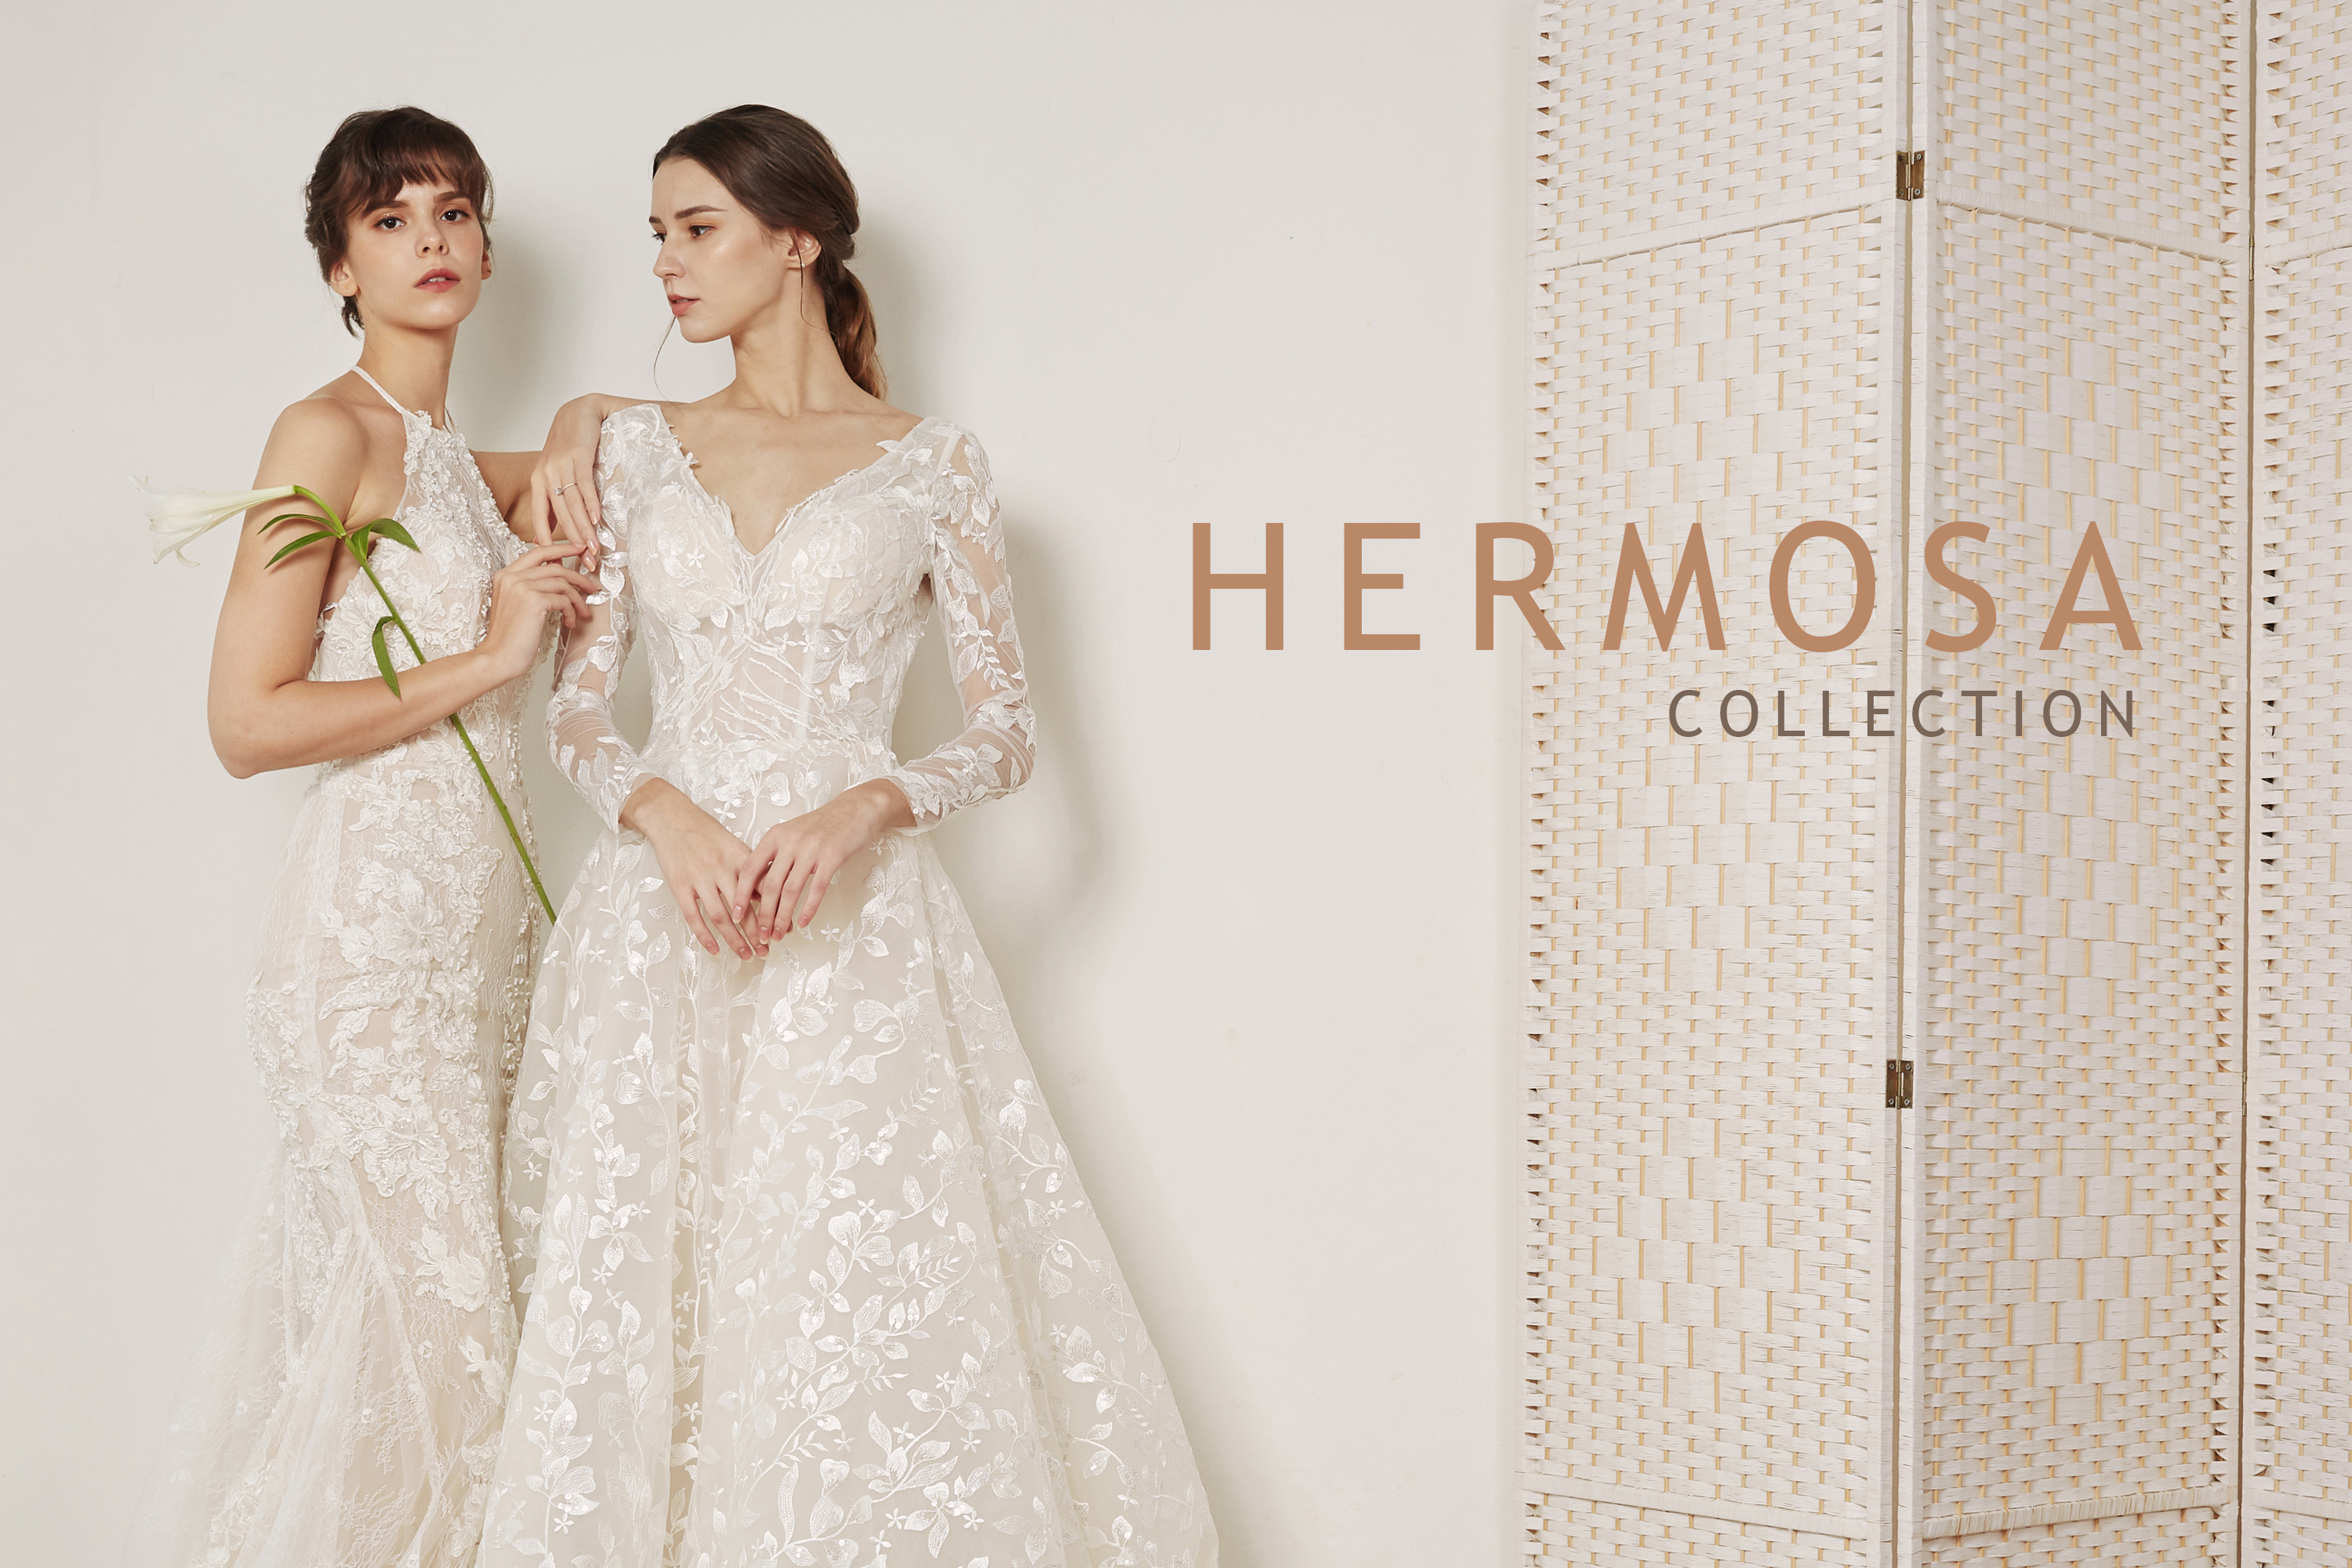 Hermosa collection